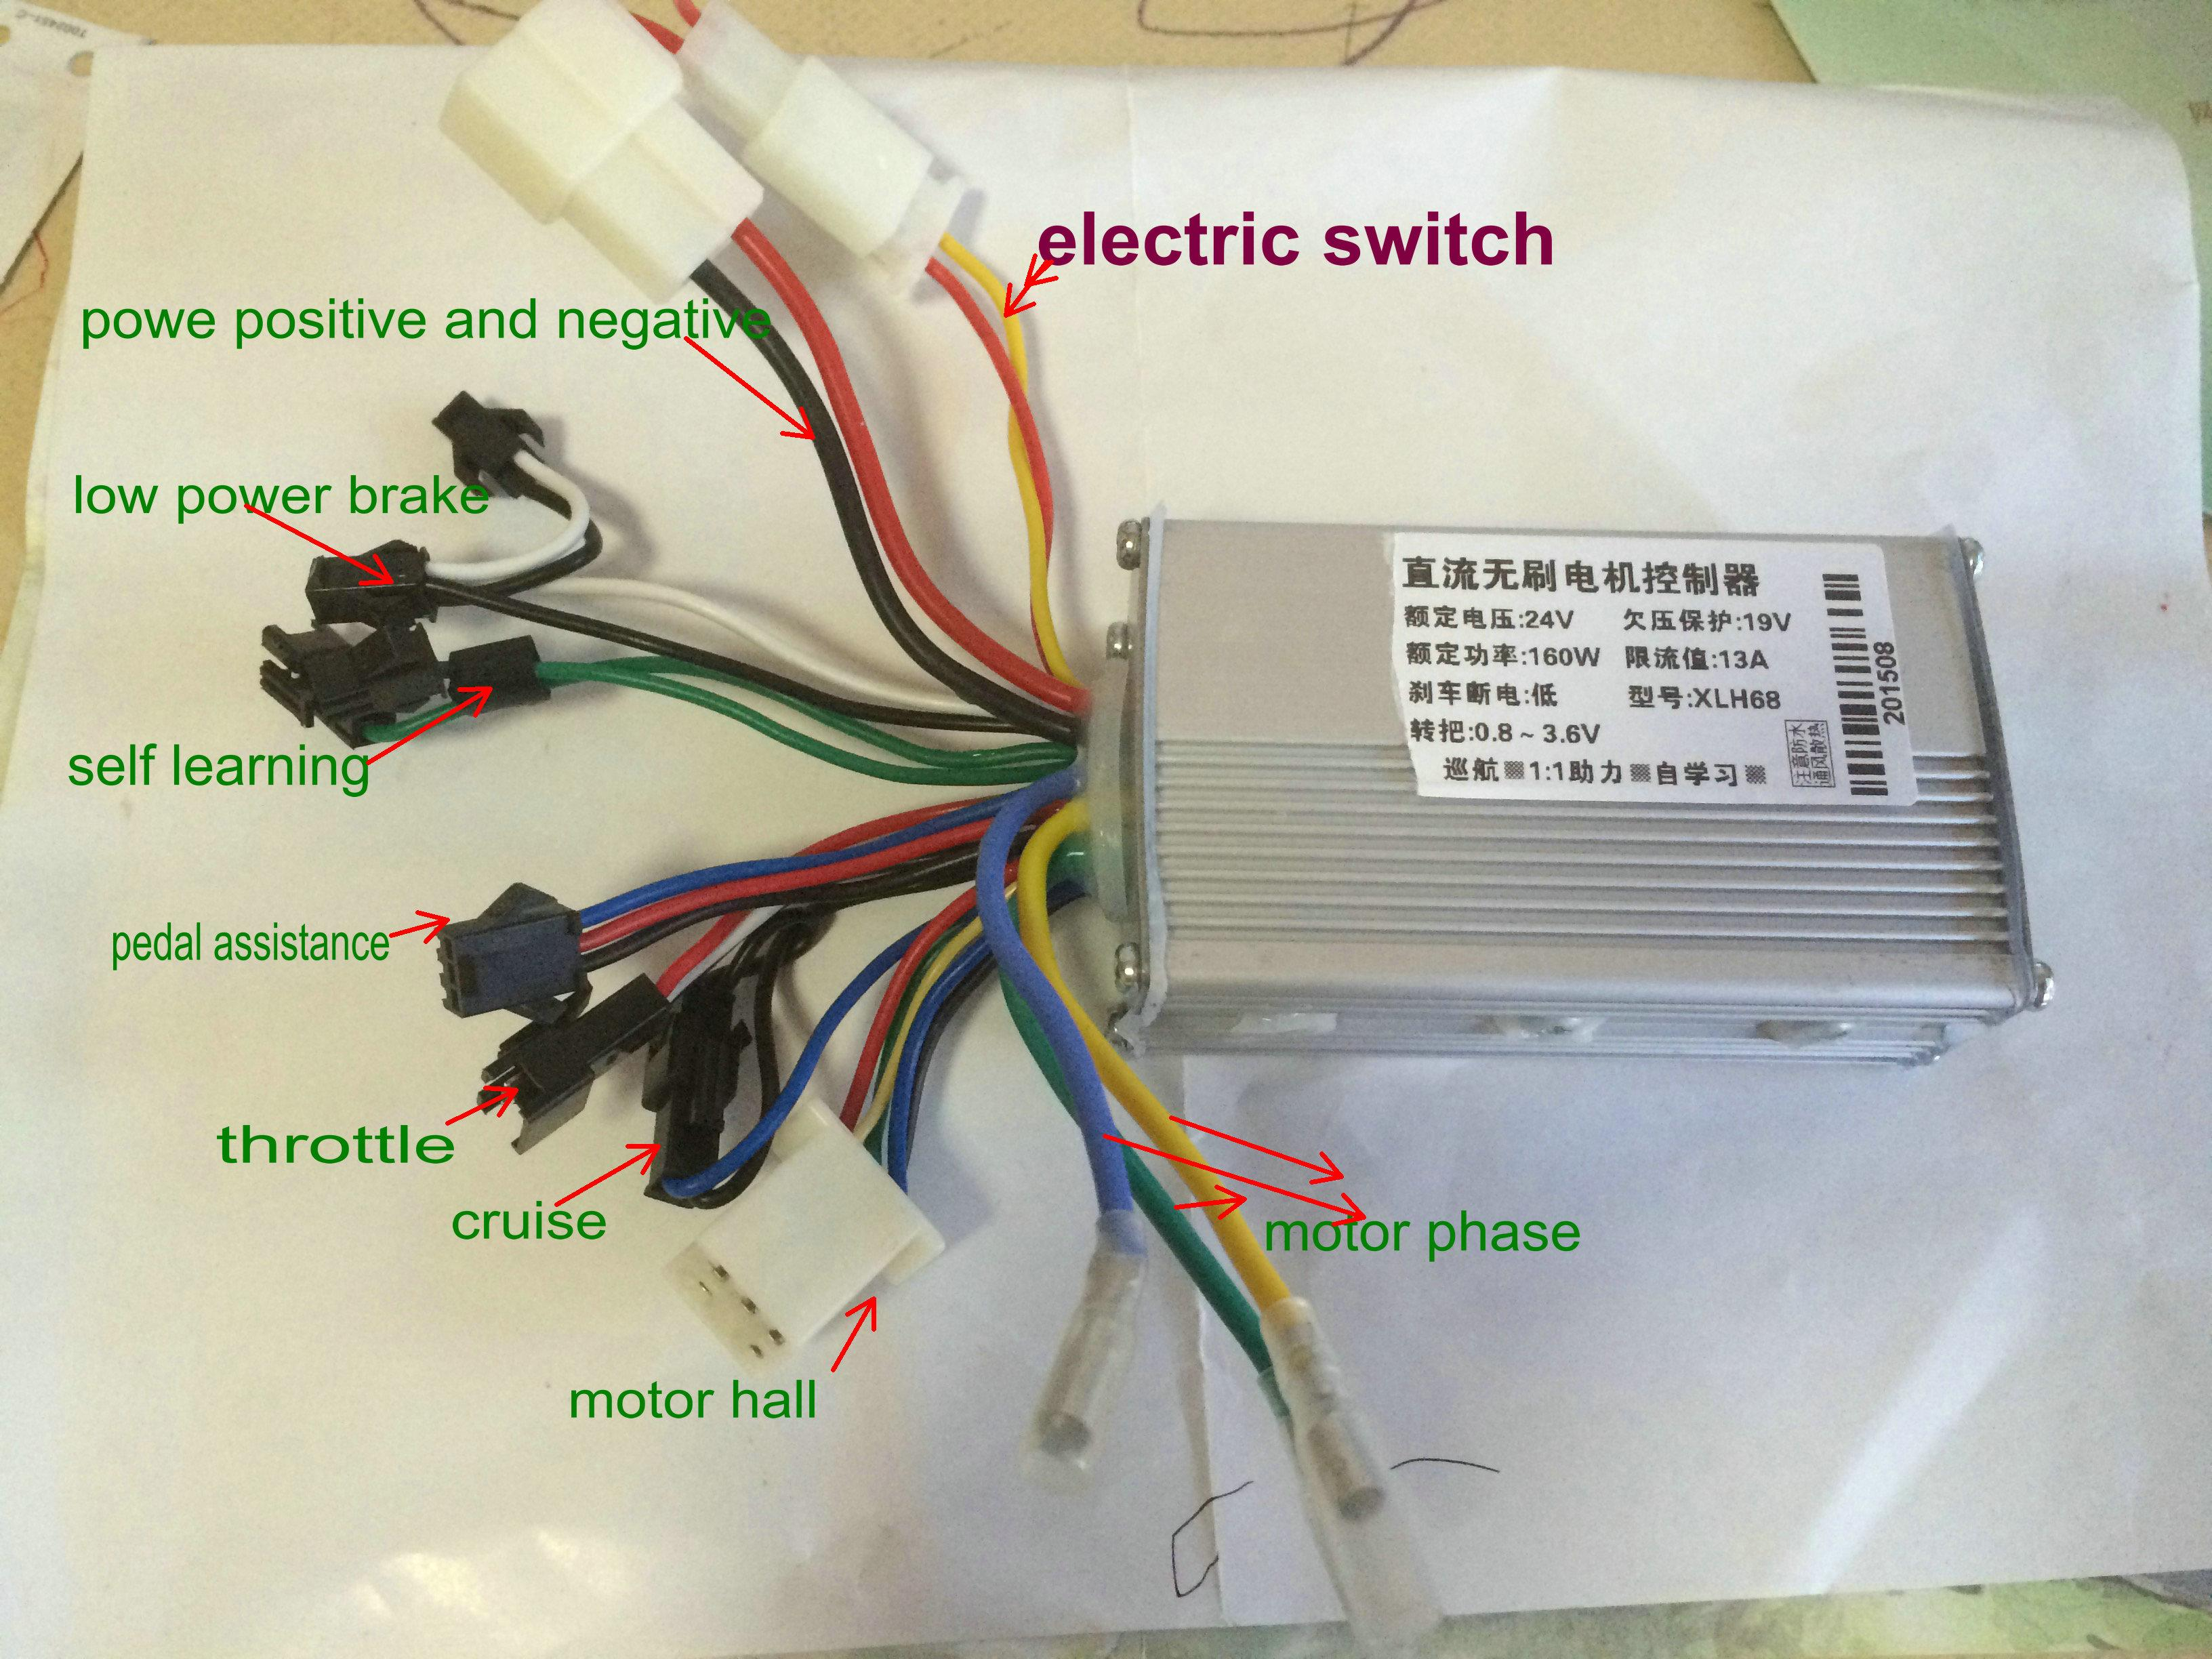 e bike controller wiring diagram Collection-2018 24v36v48v 250w350w Bldc Motor Speed Controller 6 Mosfet Dual Mode Electric Bike Mtb Tricycle Scooter Moped Conversion Part From Phoebeqxvehiclesport 13-g